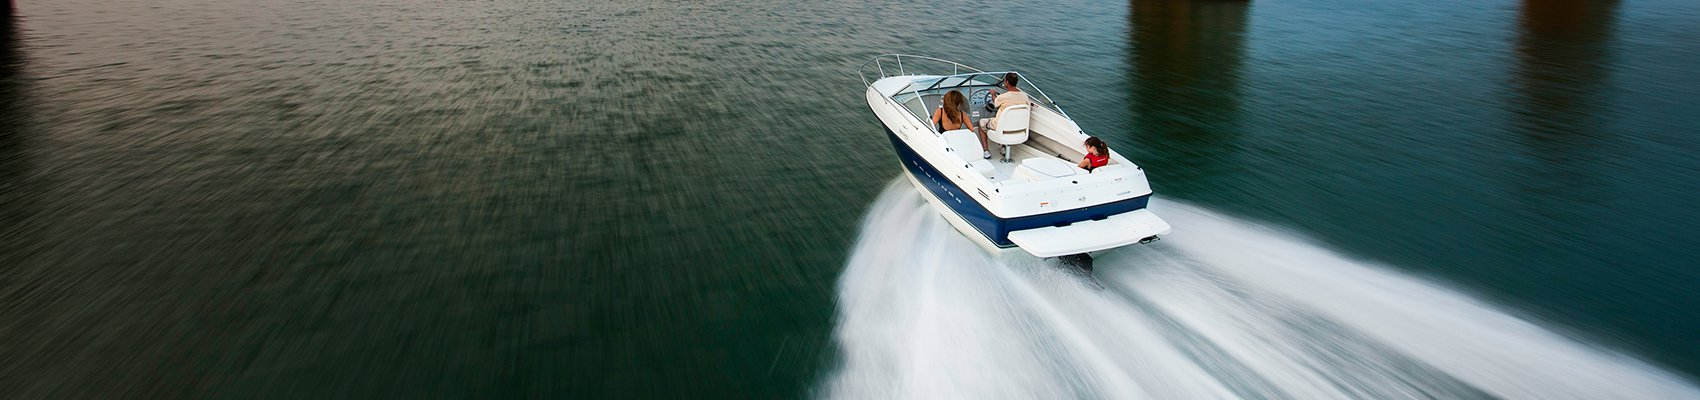 Crusing fast across the water with an inboard engine